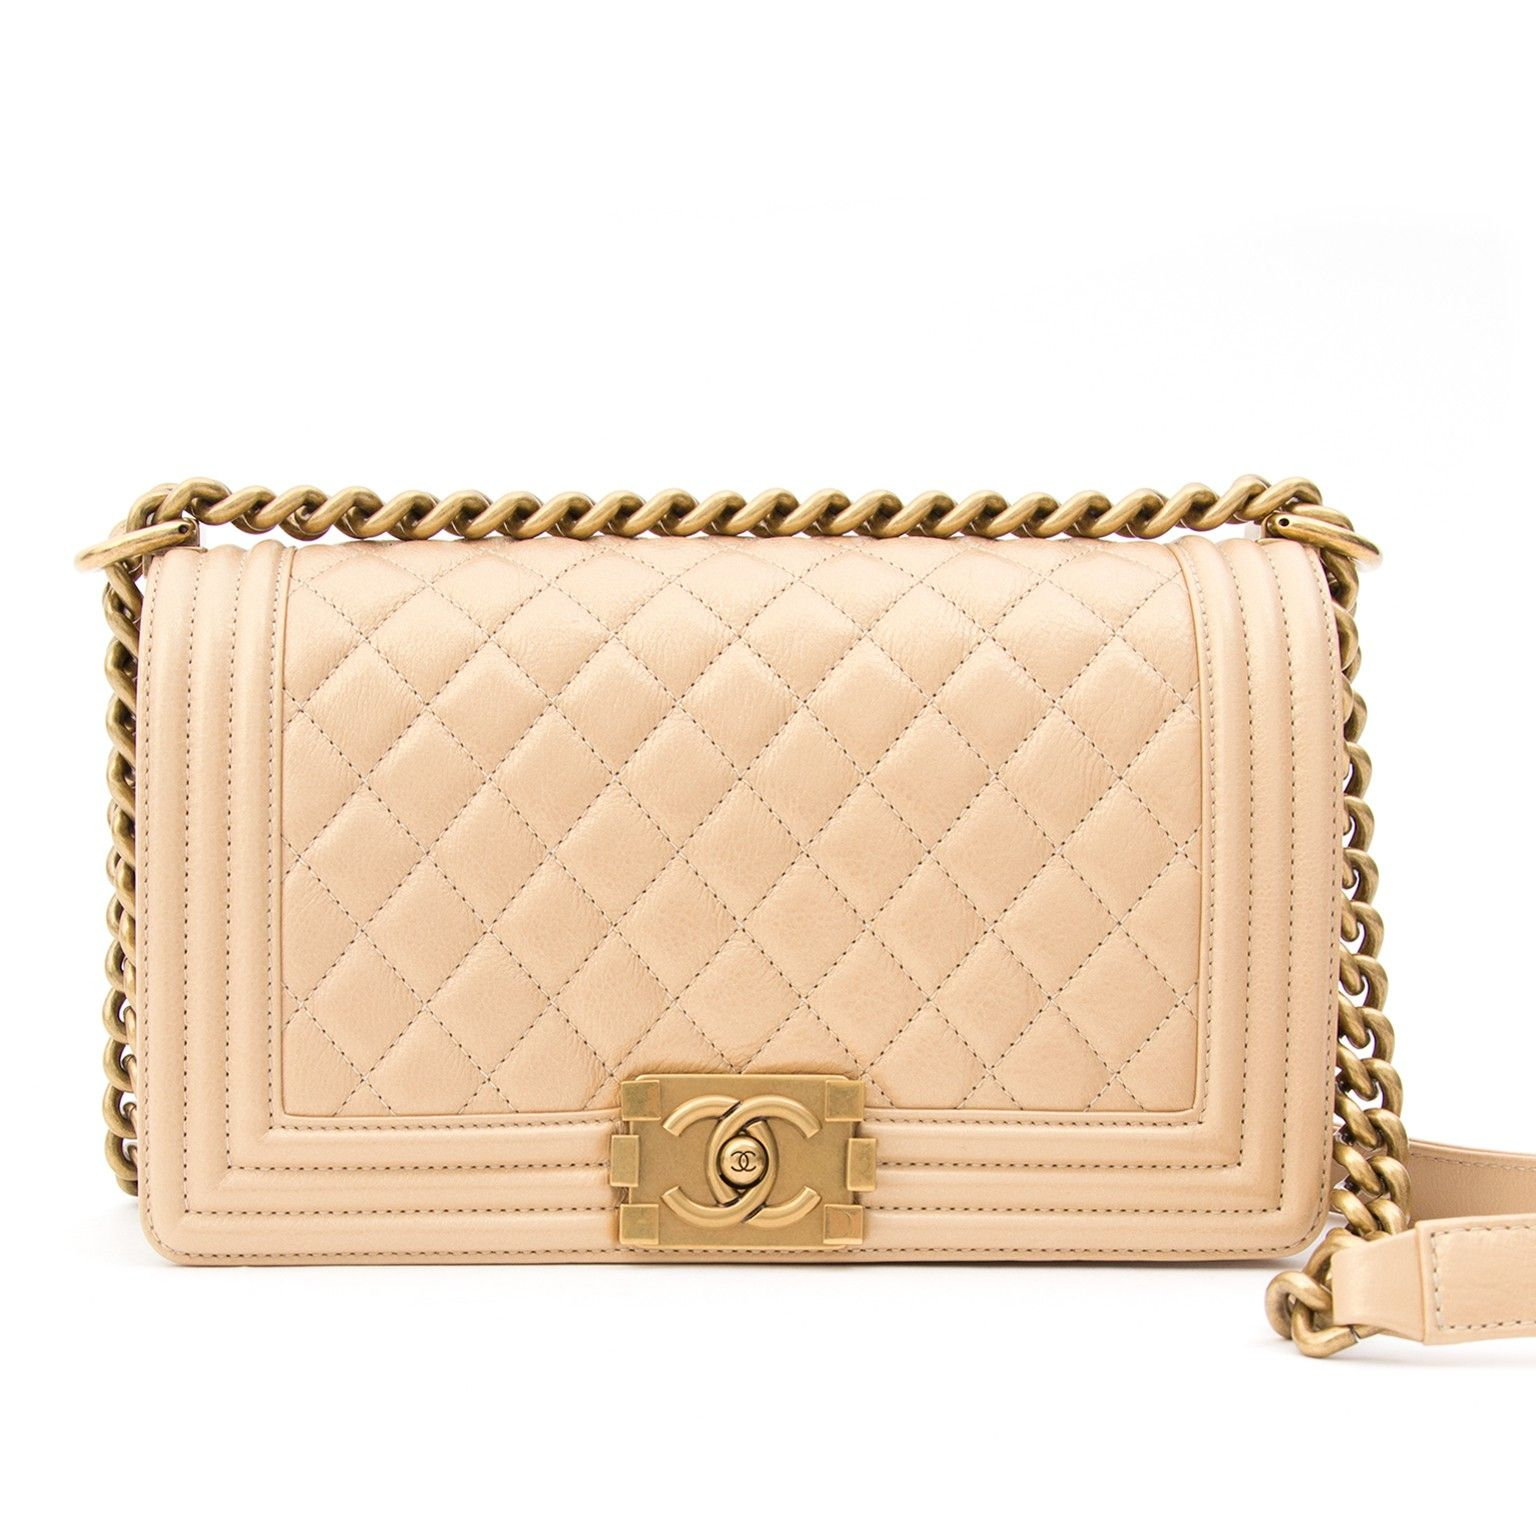 Chanel Pearl Beige Calfskin Medium Boy Bag  54ab63a0a604c